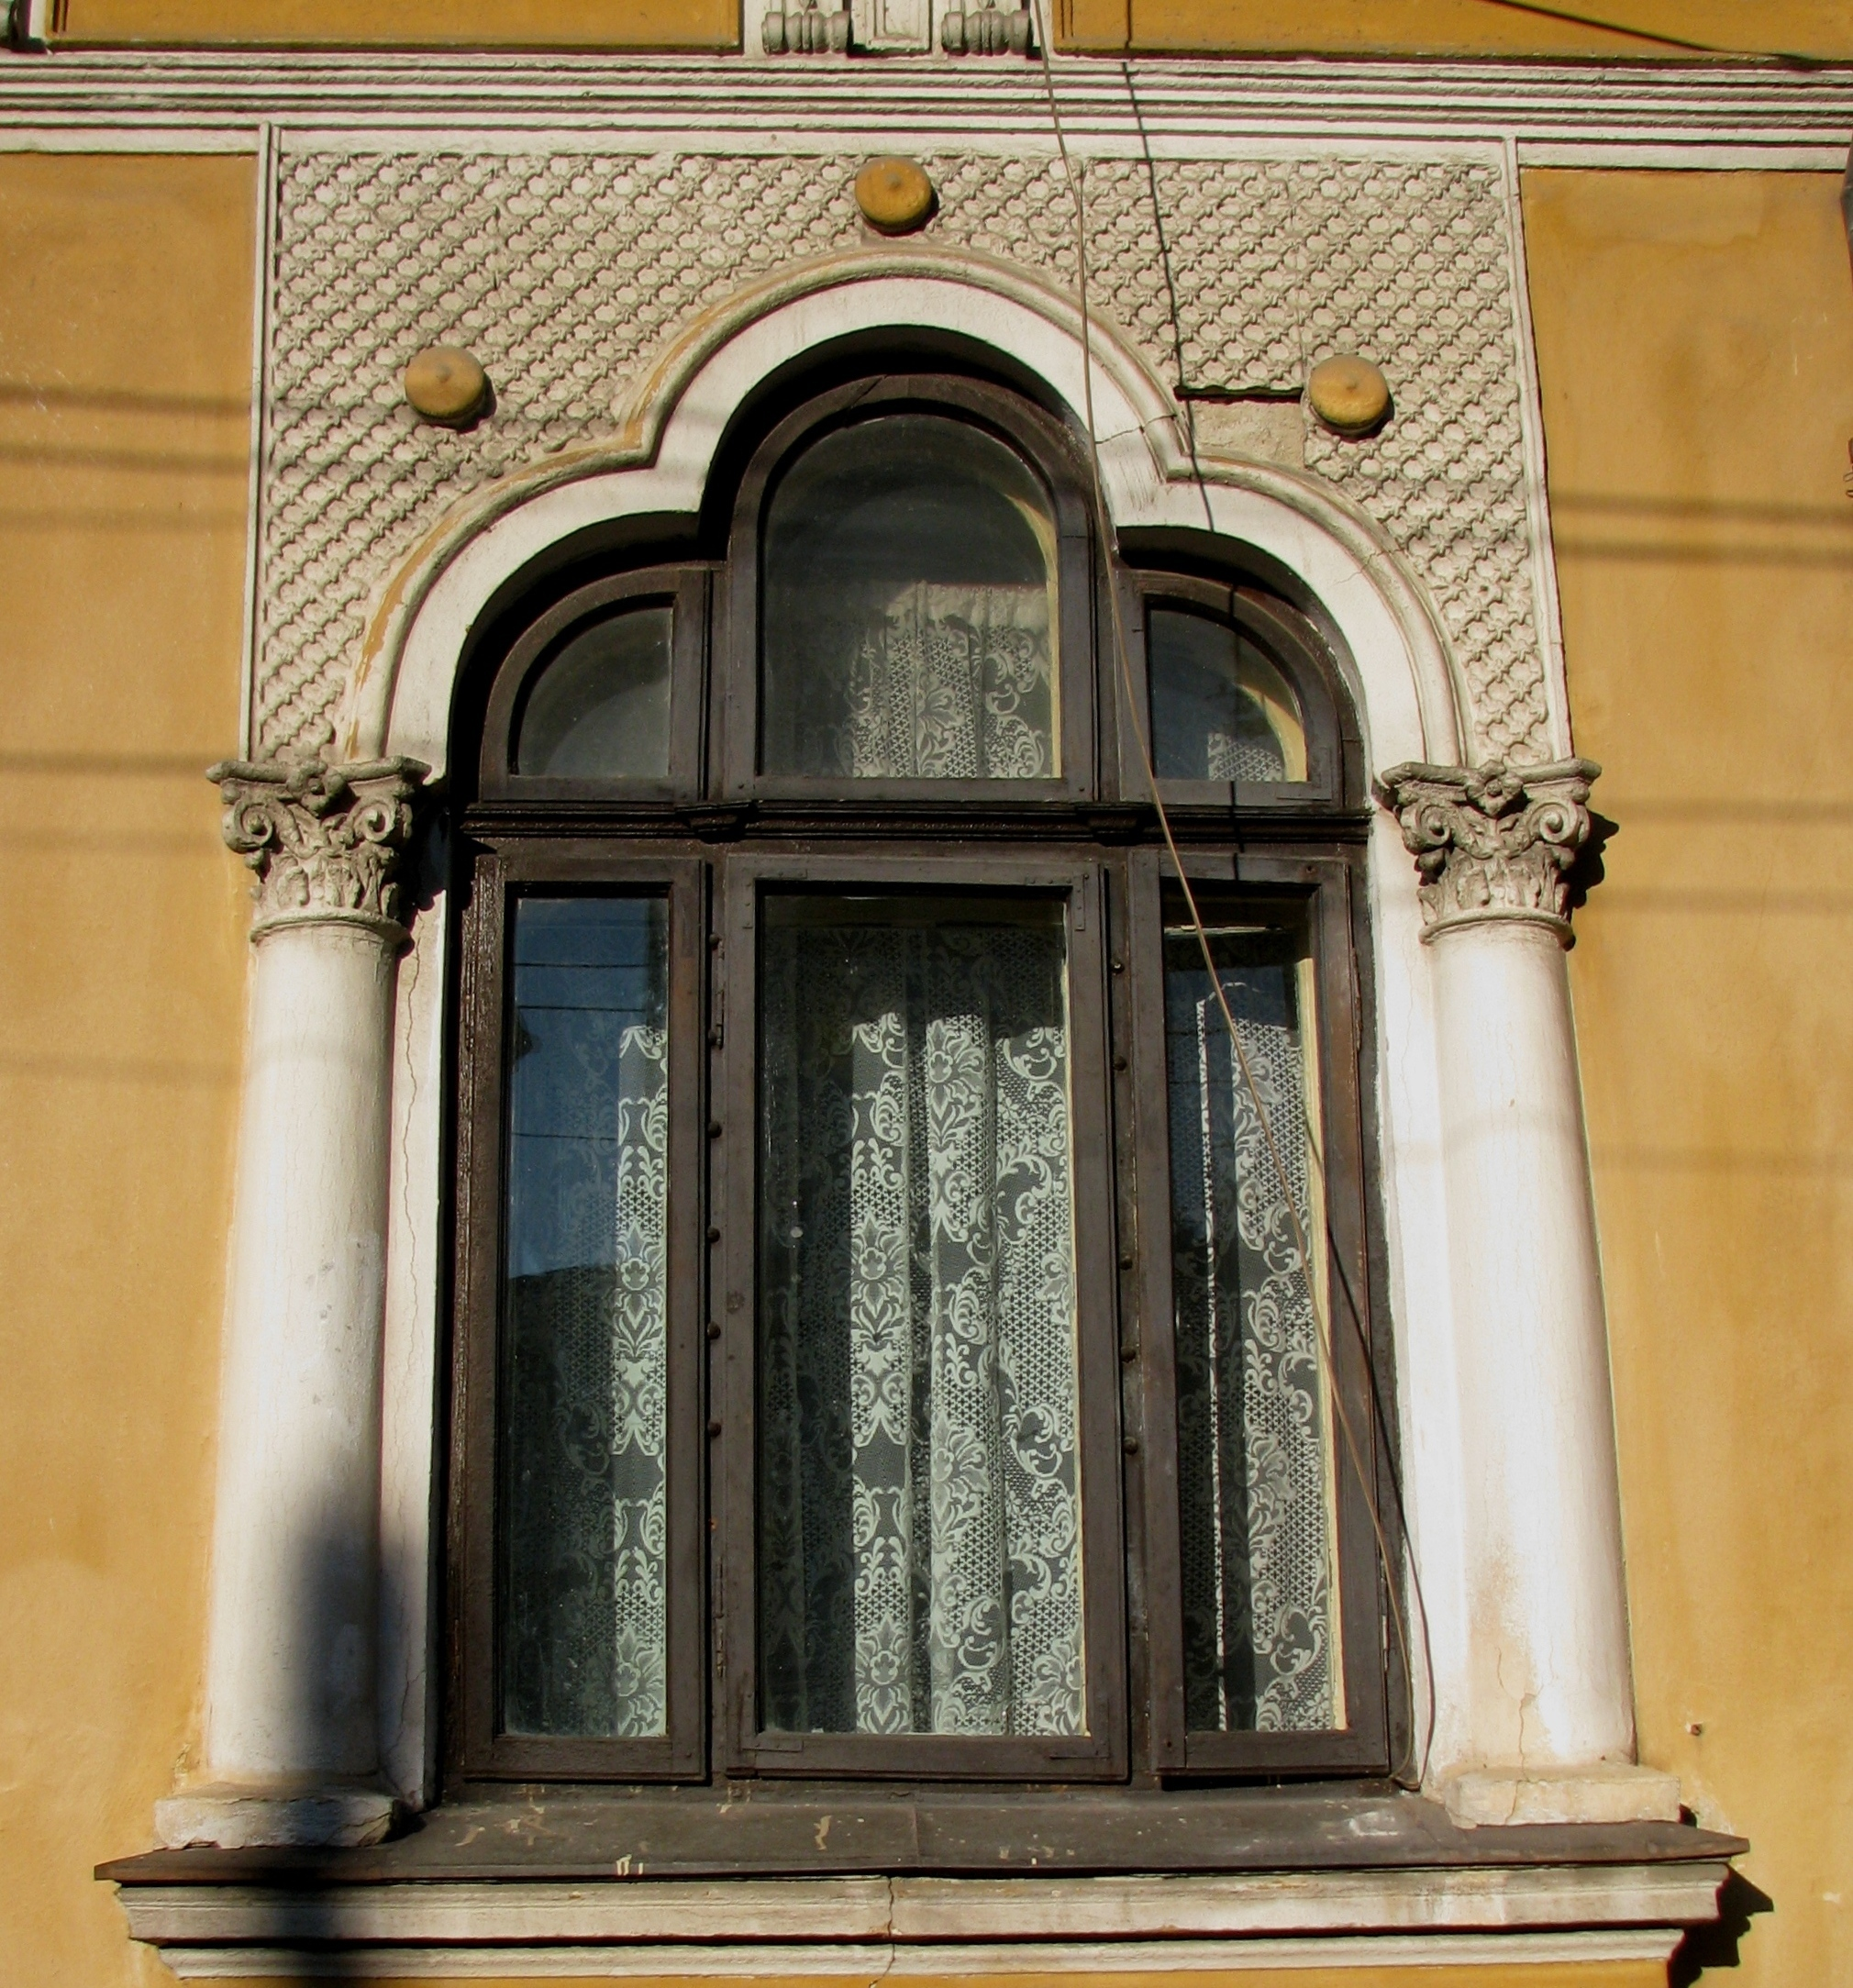 National romantic and neo romanian style house windows in for House windows